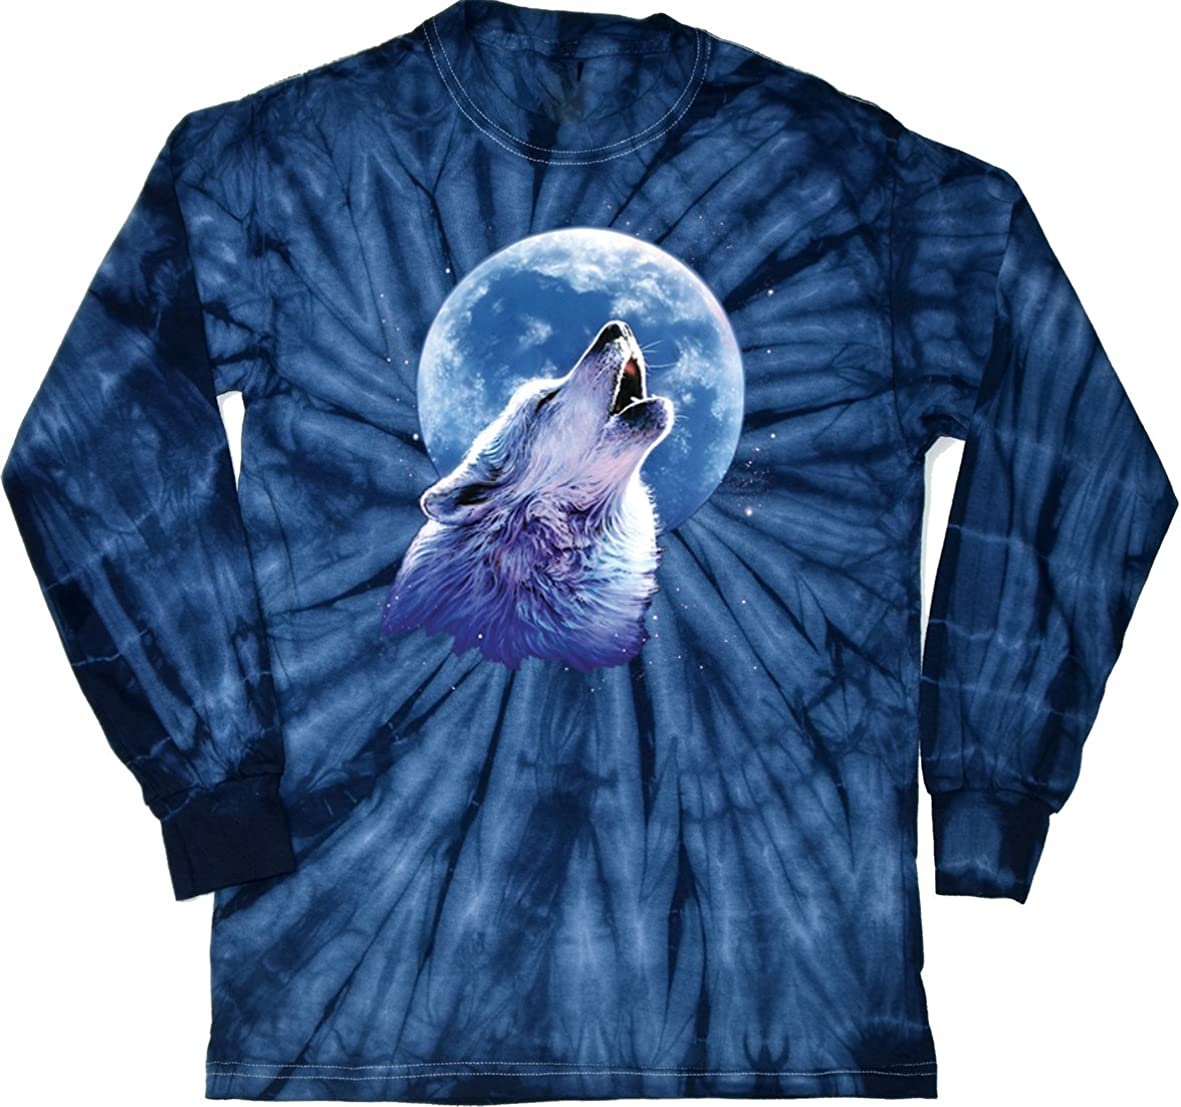 Buy Cool Shirts Kids Wolf and Moon T-shirt Call of the Wild Youth Tee